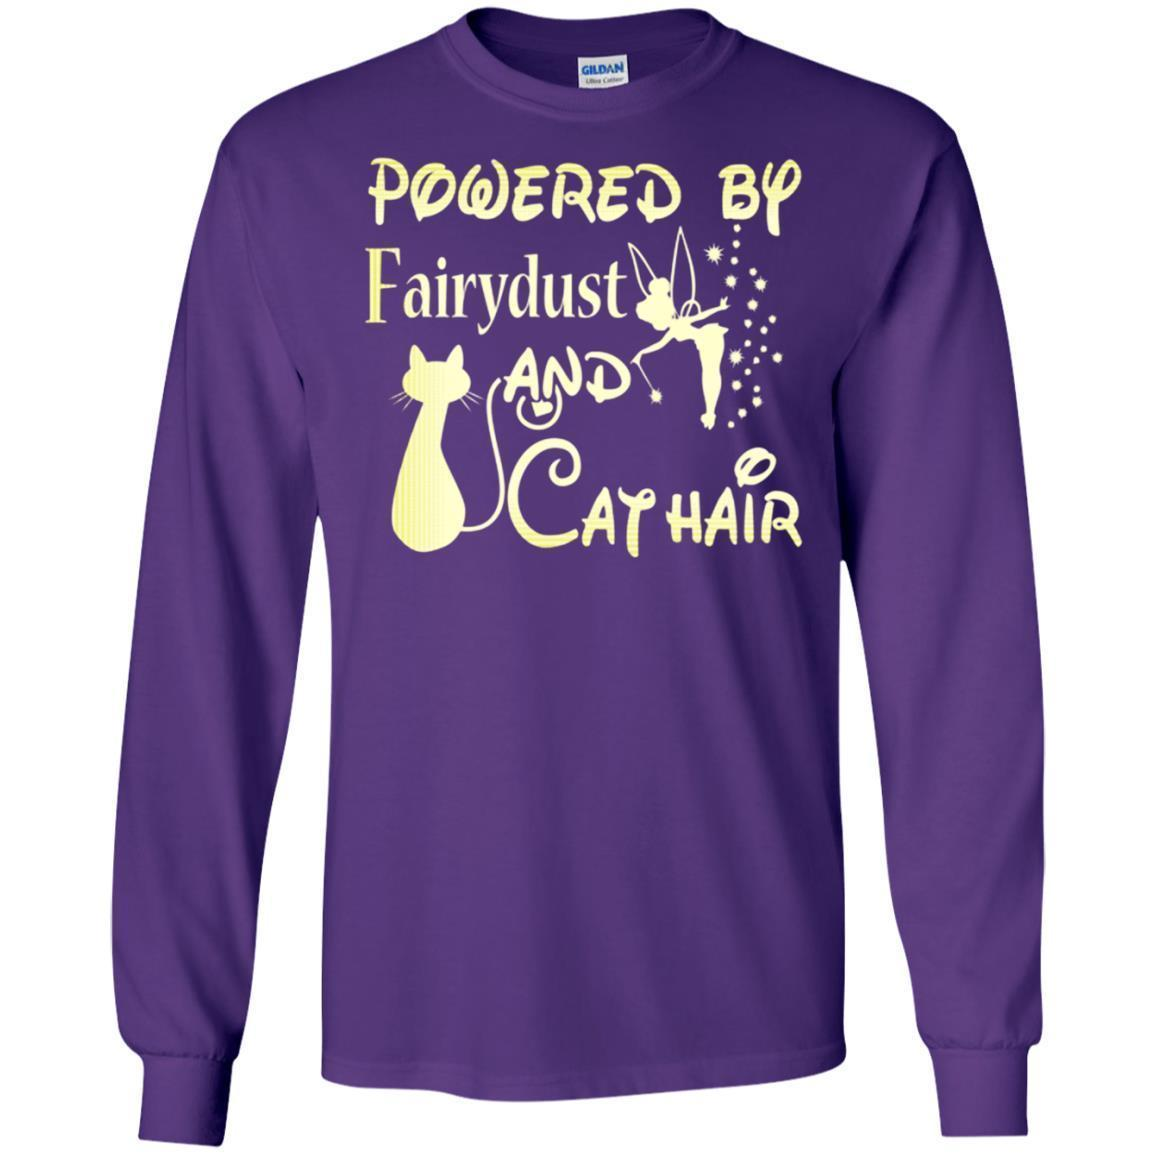 Cover Your Body With Amazing Powered By Fairydust And Cat Hair Ts Shirts